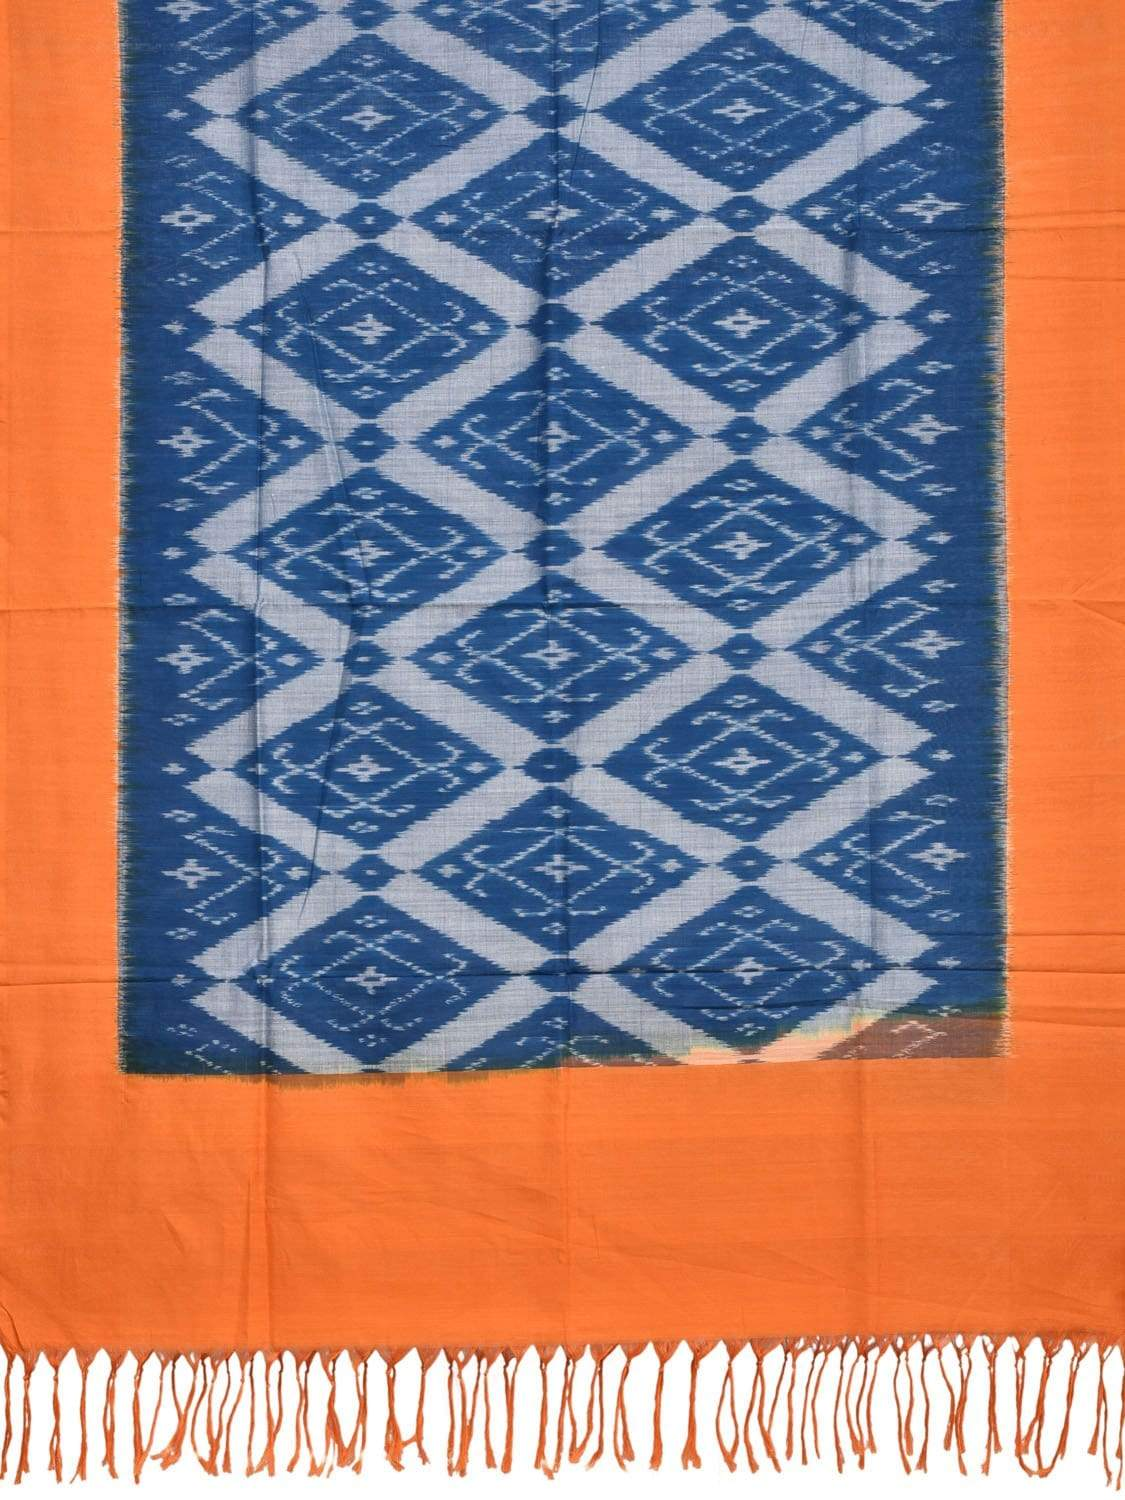 Orange and Blue Pochampally Ikat Cotton Handloom Dupatta with Grill Design ds1887